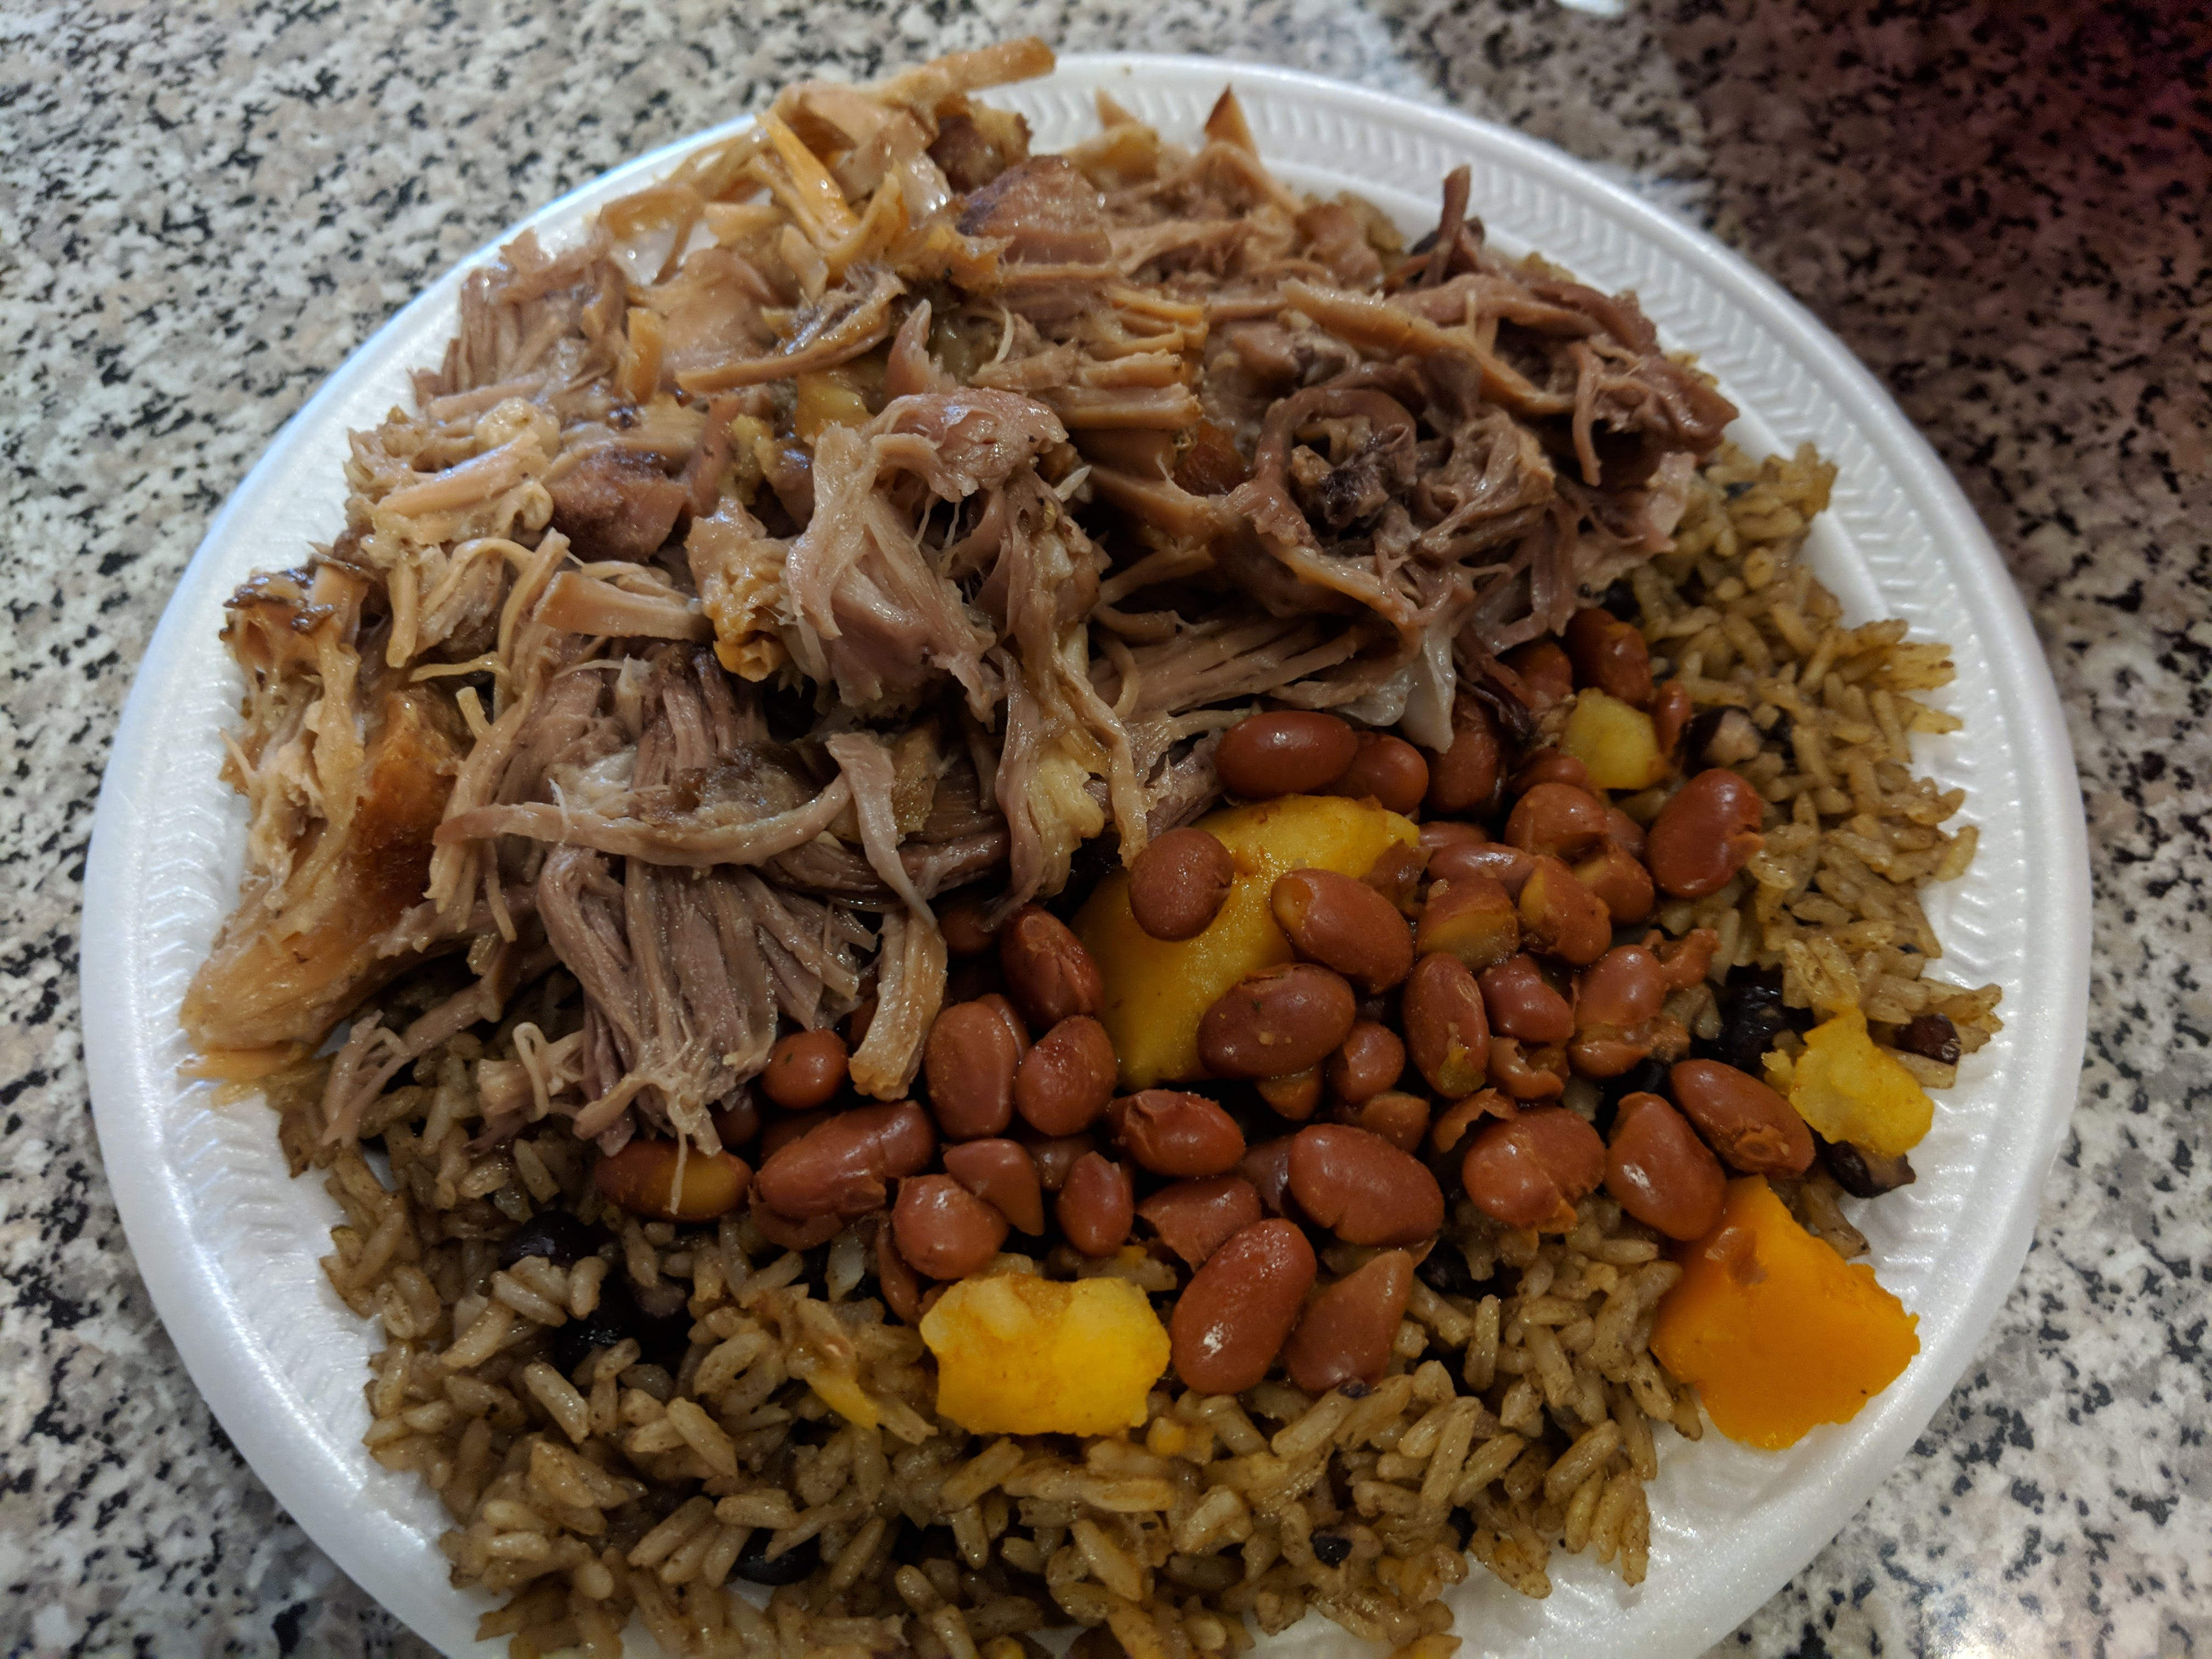 Pernil (roast pork) with rice and beans at La Olla Criolla.